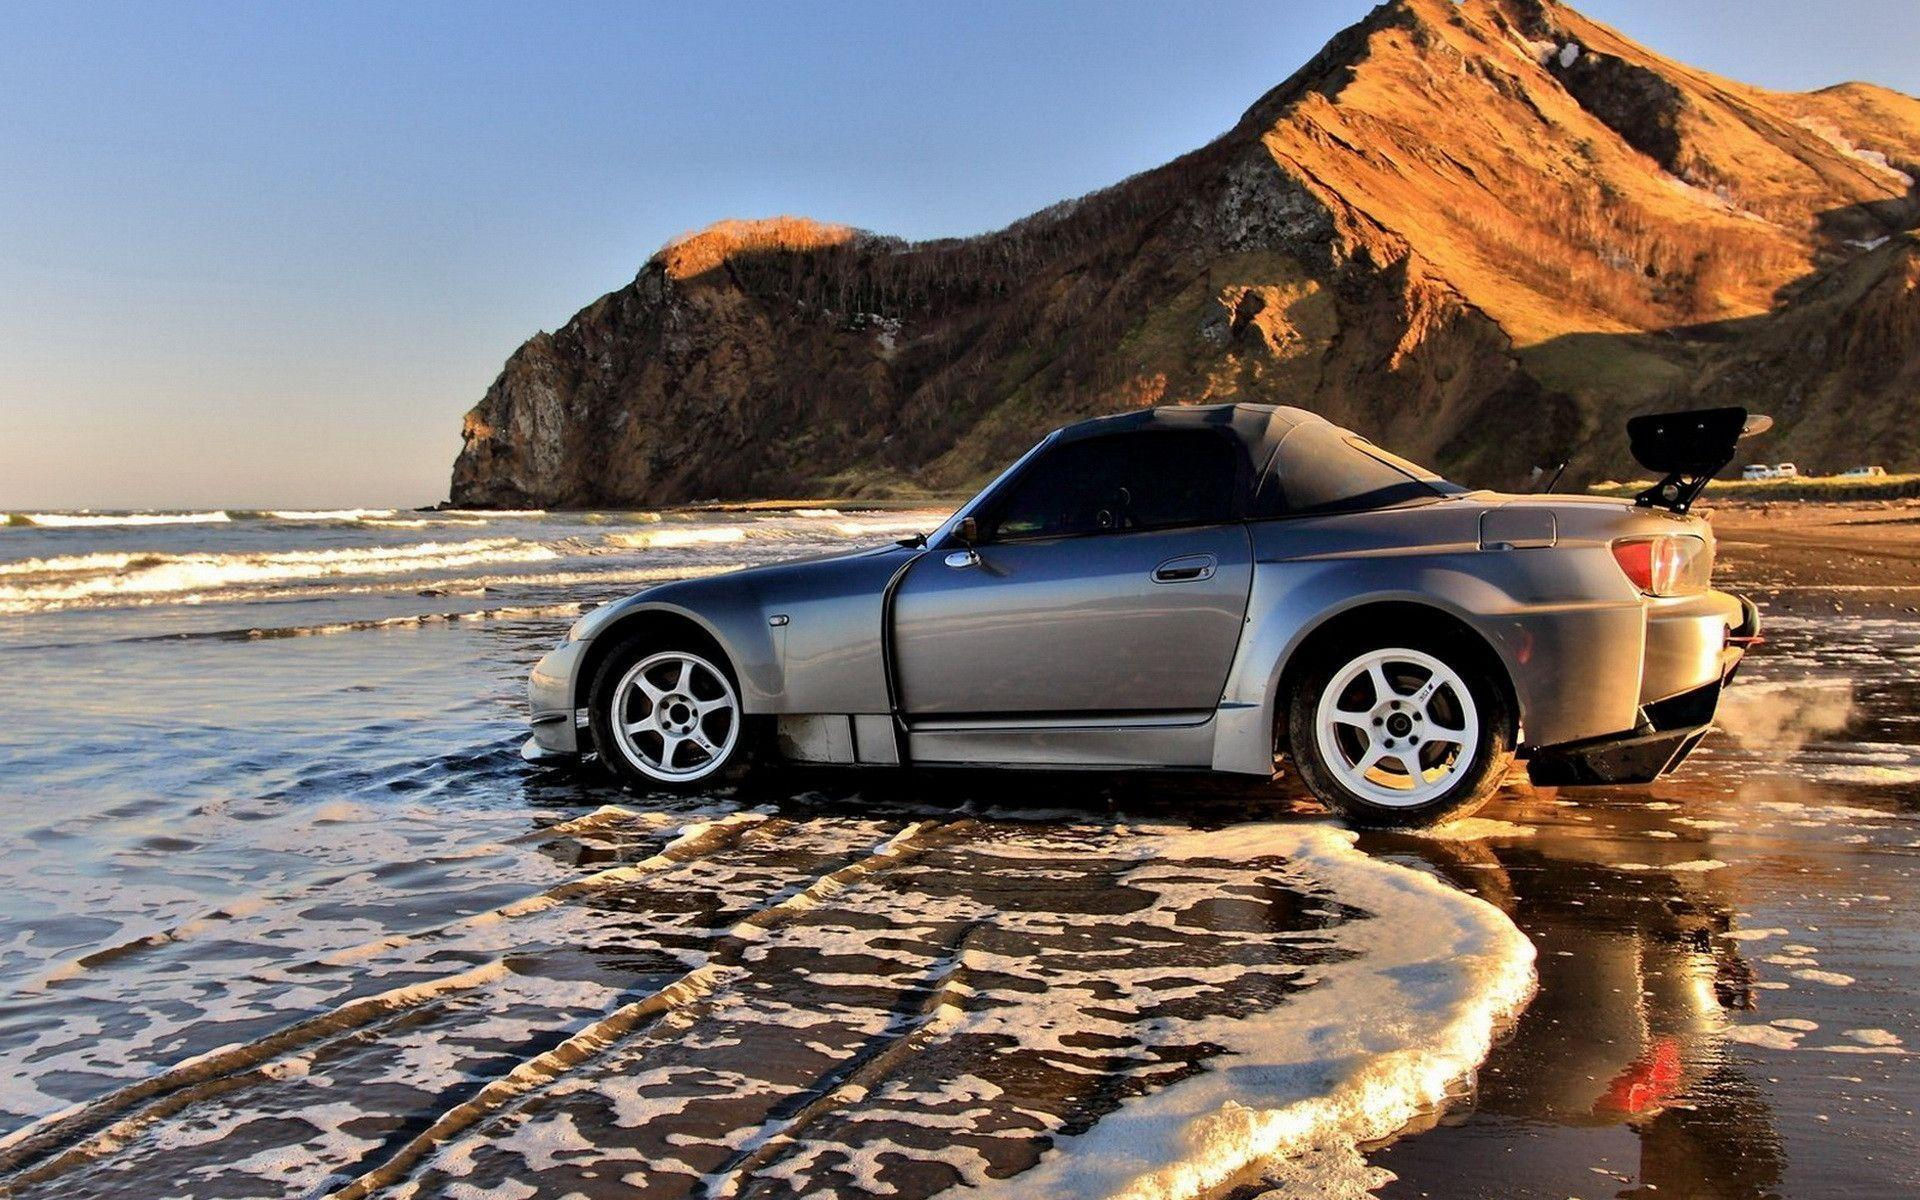 Honda S2000 wallpapers and image